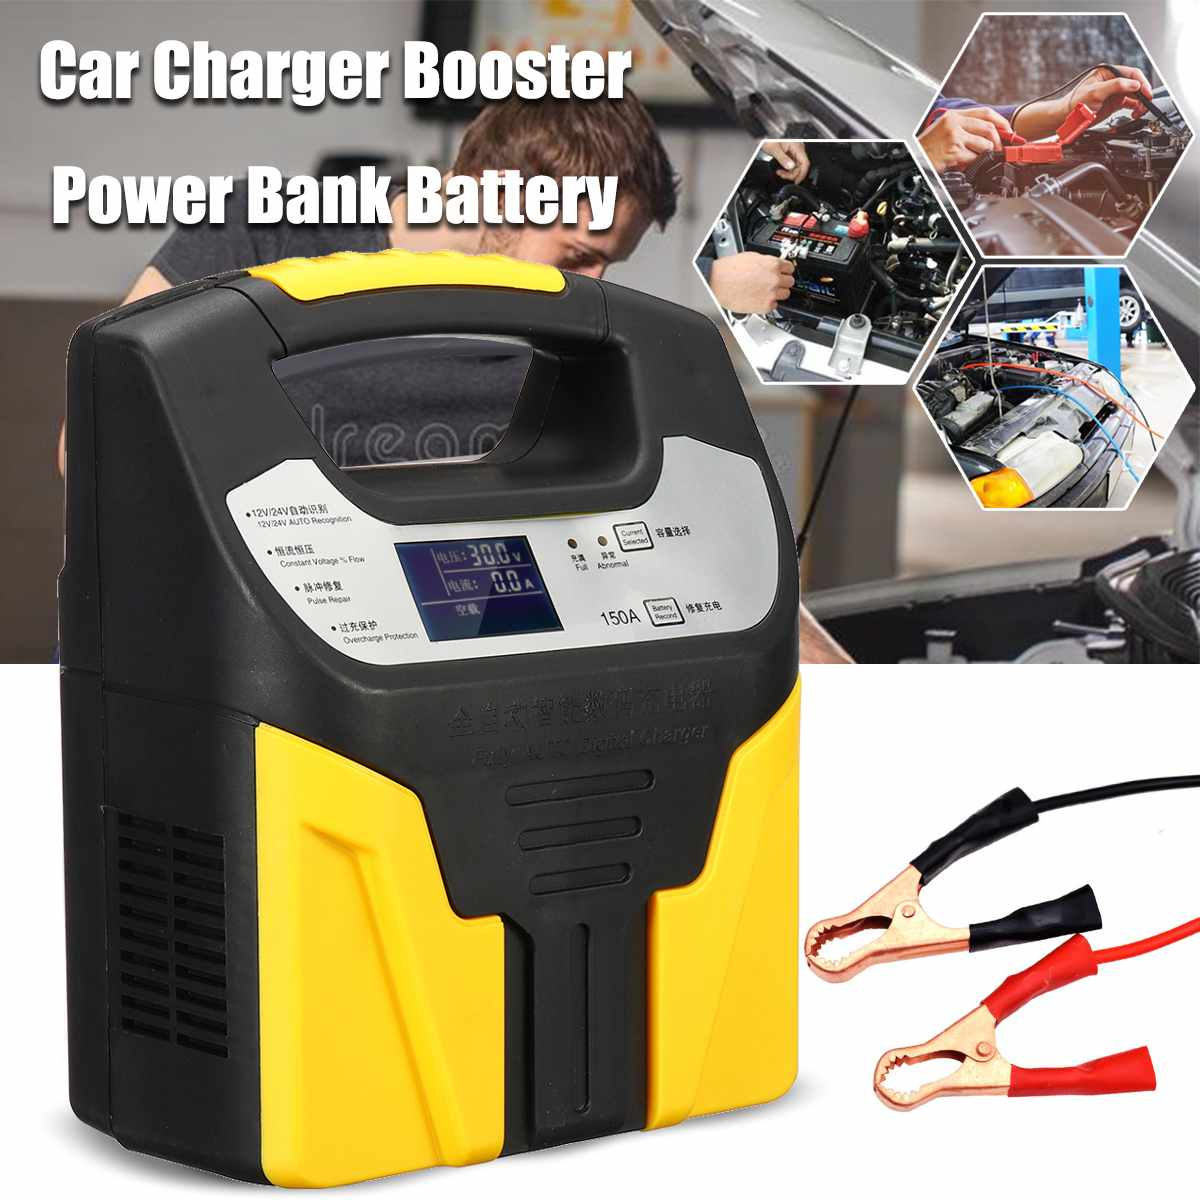 15A 220V Lead Acid Battery Chargers 12v 24V Smart Fast Charging Full Automatic Motorcycle Truck Car Battery Charger LCD Display|Chargers & Service Equipment| |  - title=